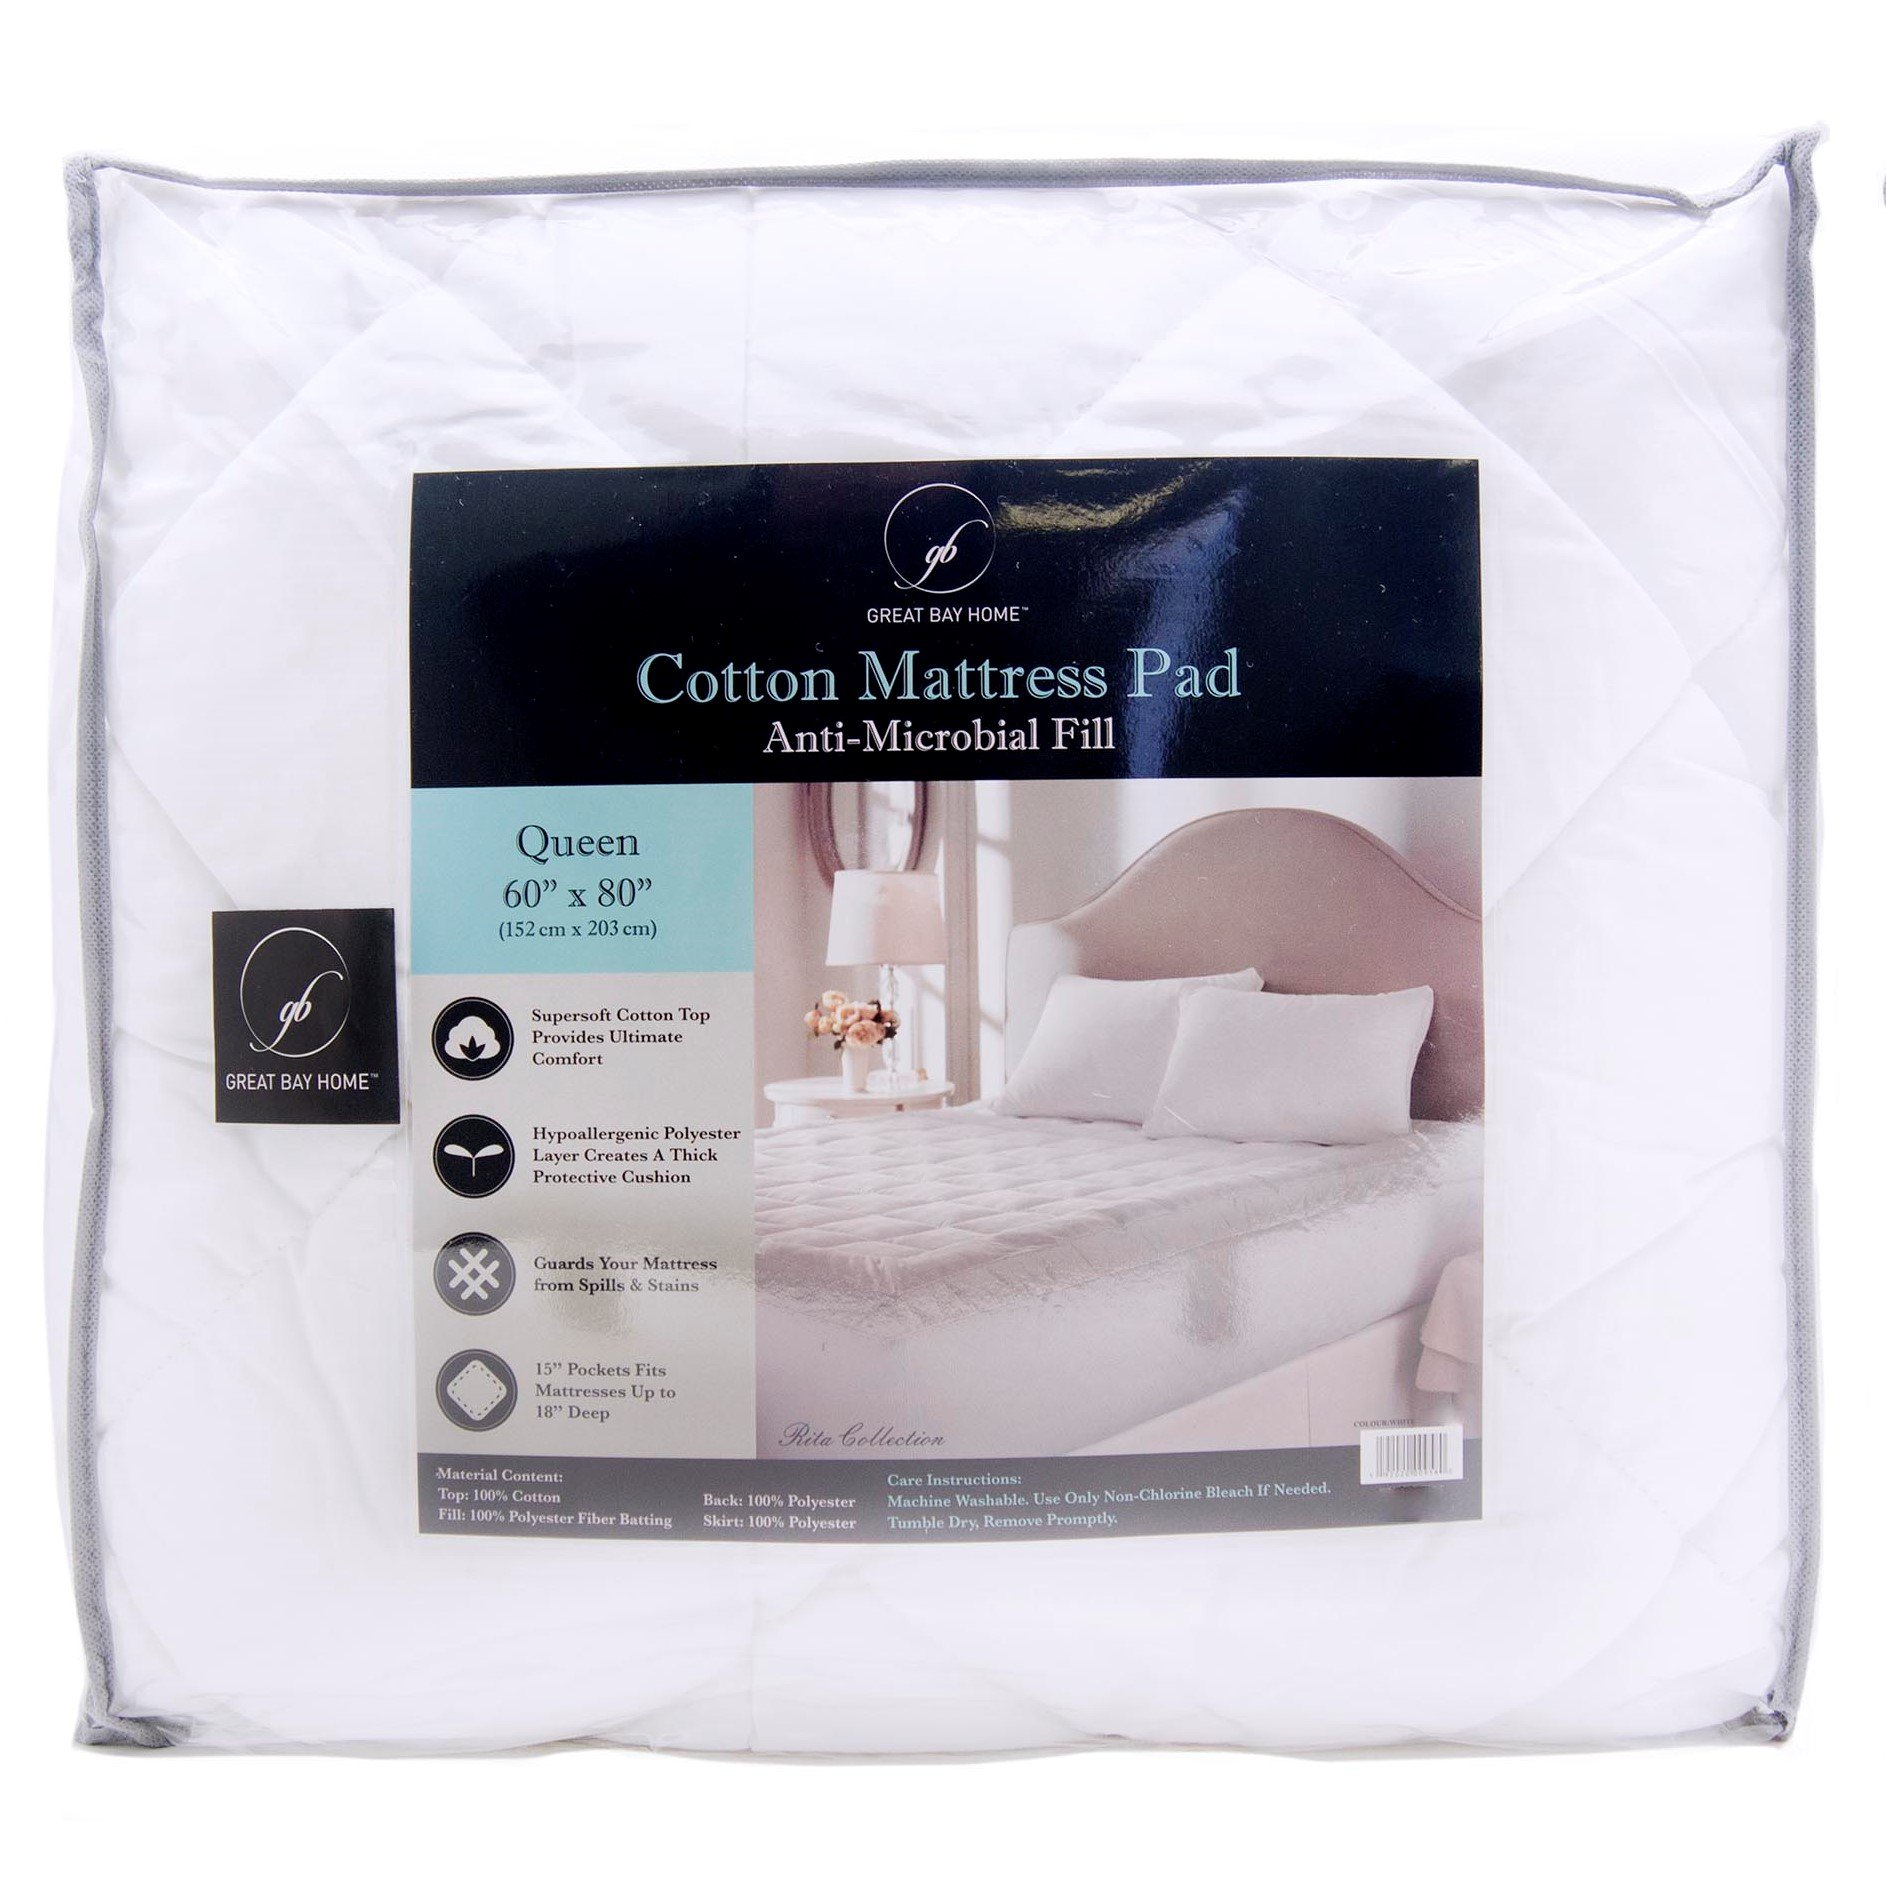 Great Bay Home Ultra-Soft Cotton Quilted Mattress Pad. Comfortable. Stretches up to 18 Inches Deep. By Brand. (King, White)